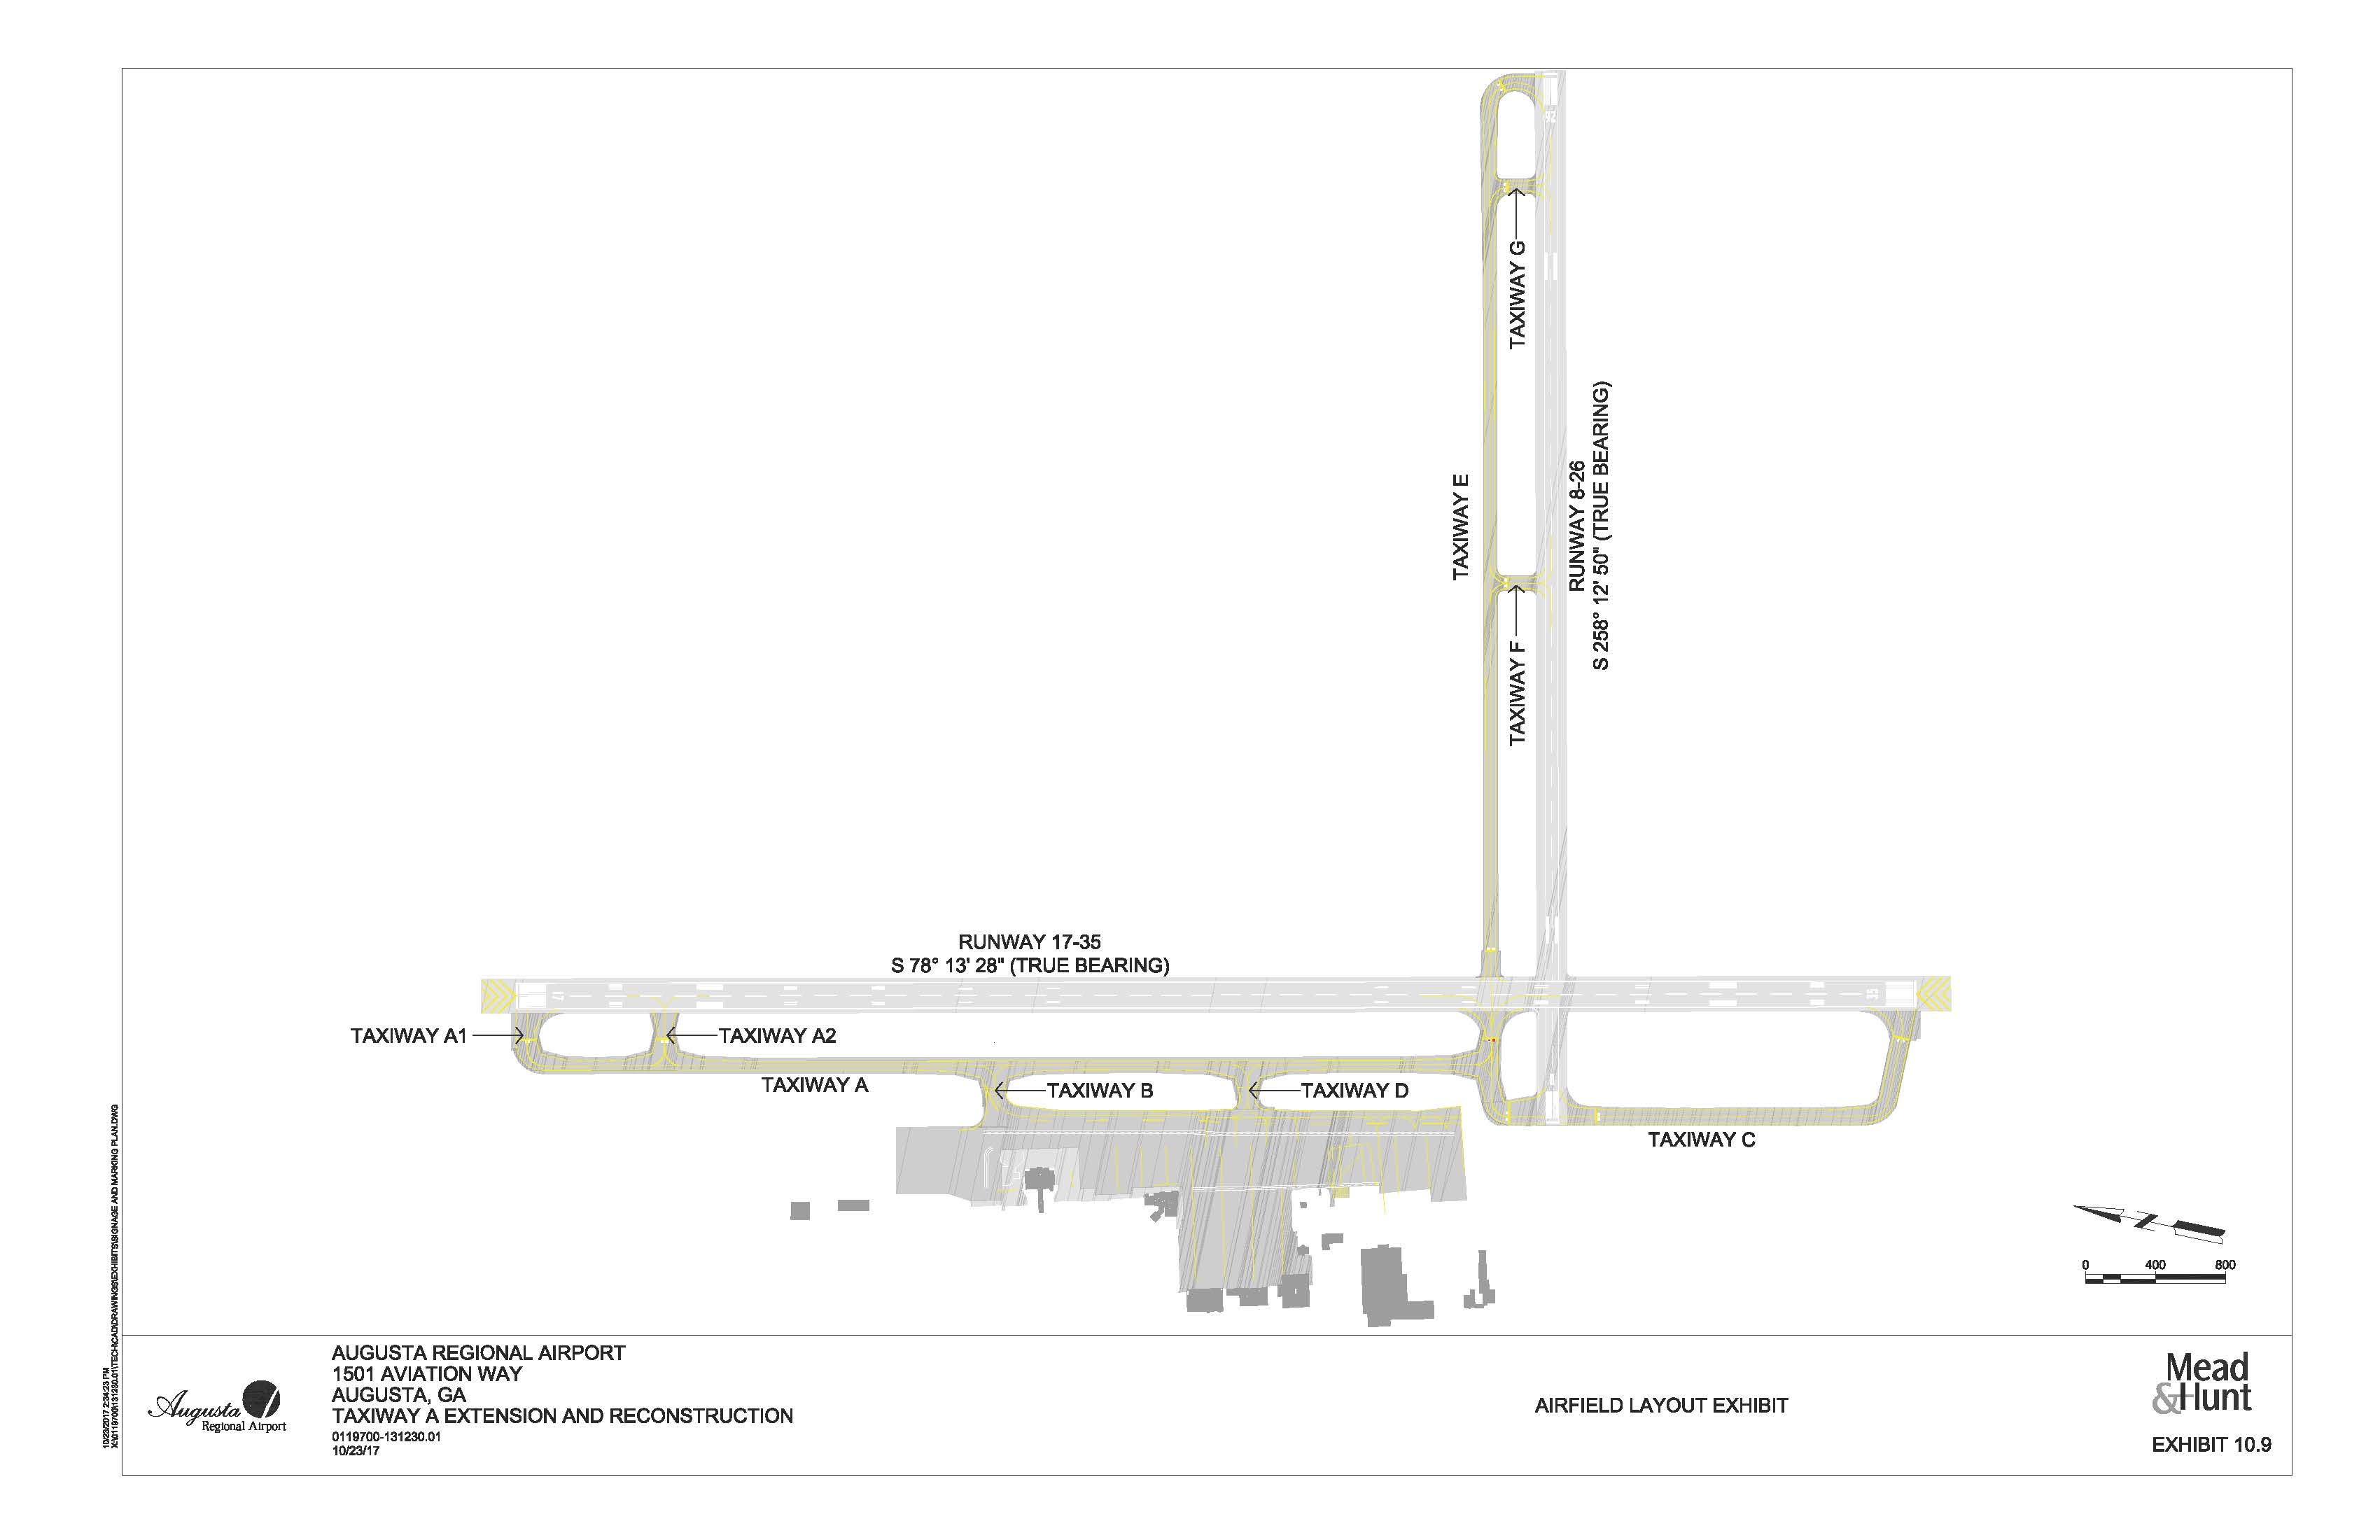 New Taxiway Configuration for 2018 O | Taxiway Configuration